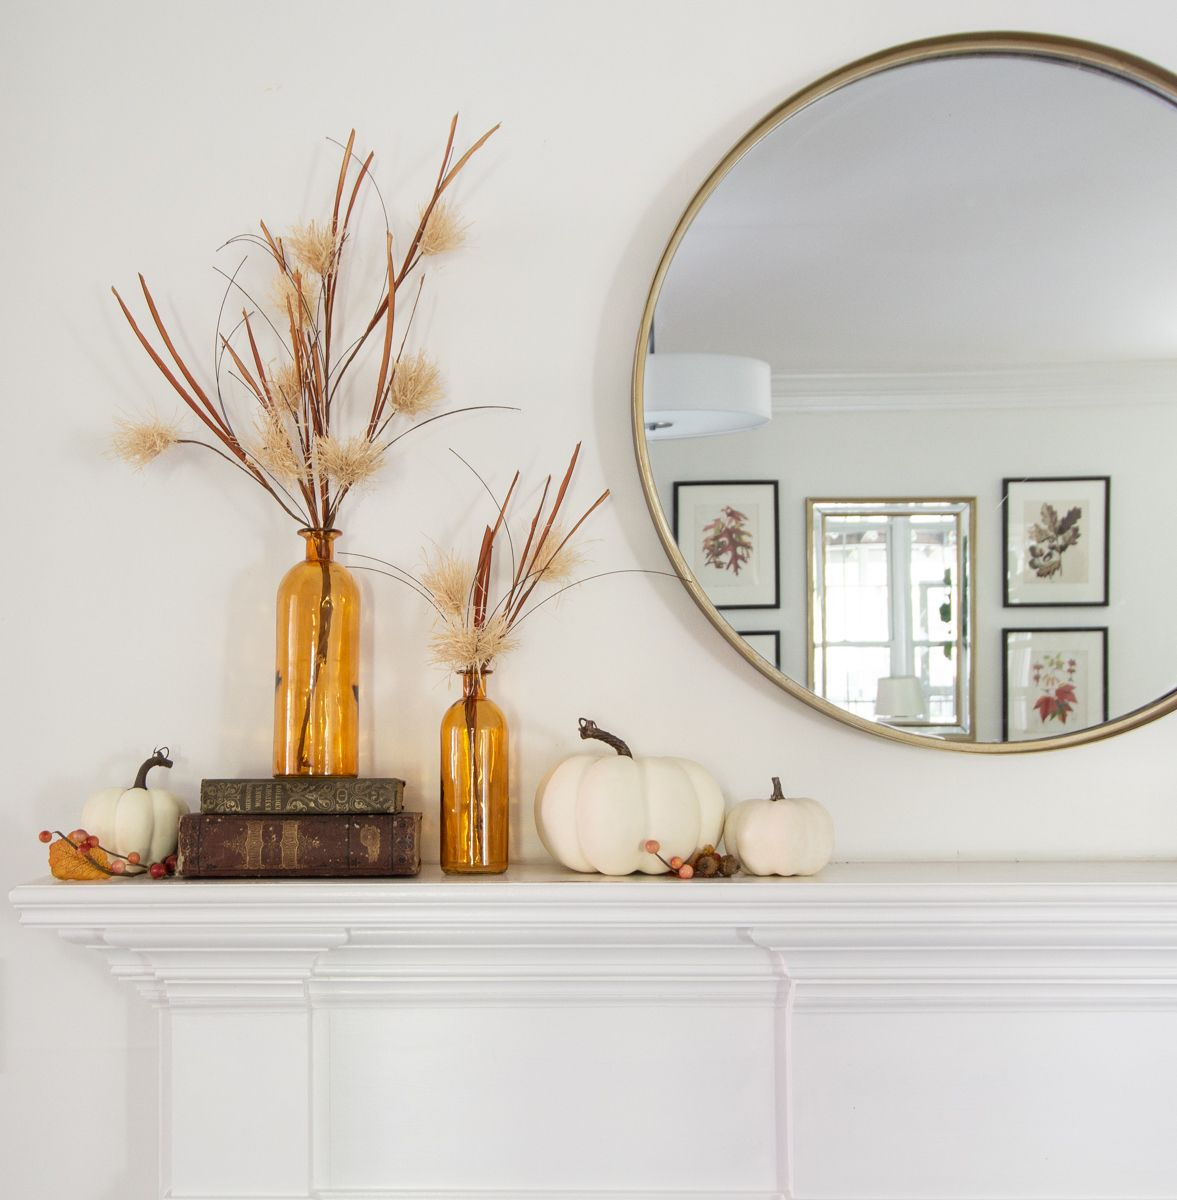 4 Ways to style a Simple Fall Mantle with a Round